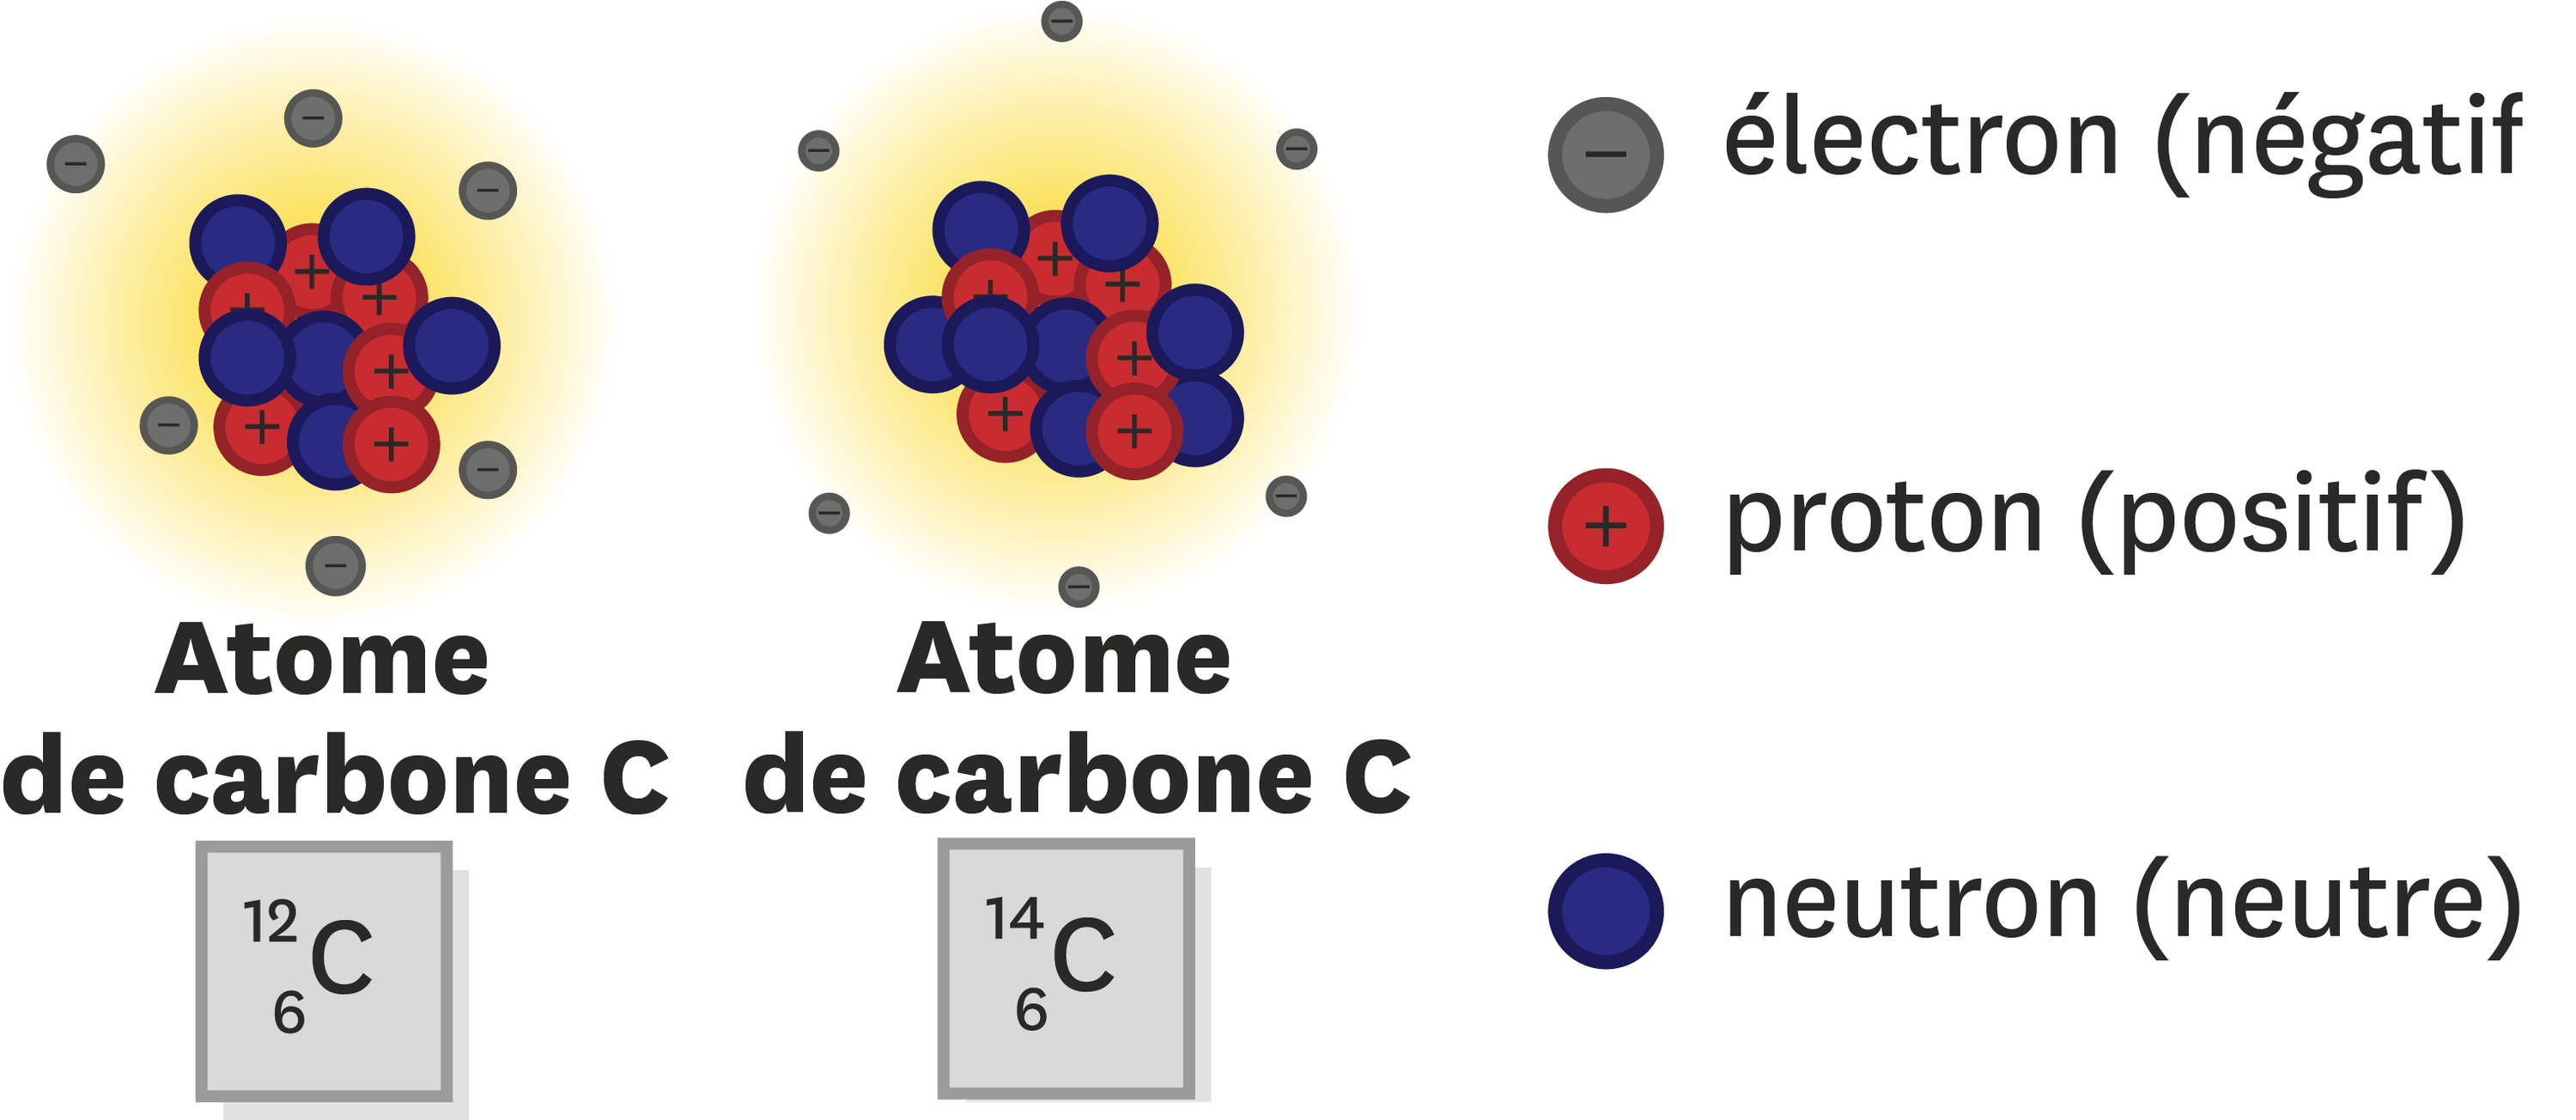 Description de la composition des atomes de carbone 12 (de symbole 12C) et carbone  (de symbole 14C).